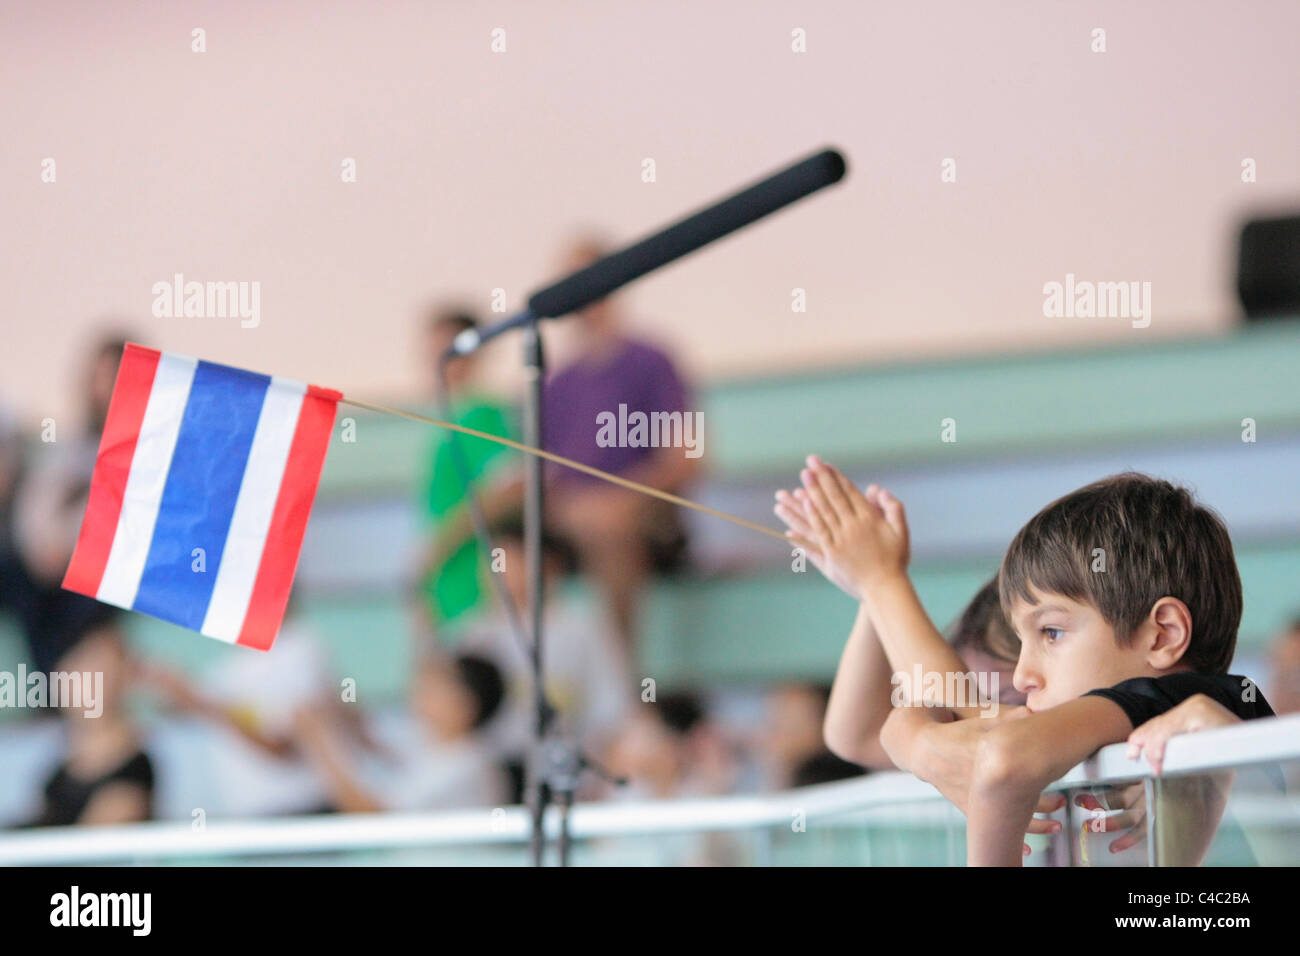 Thai fans waving the state flag of Thailand. - Stock Image